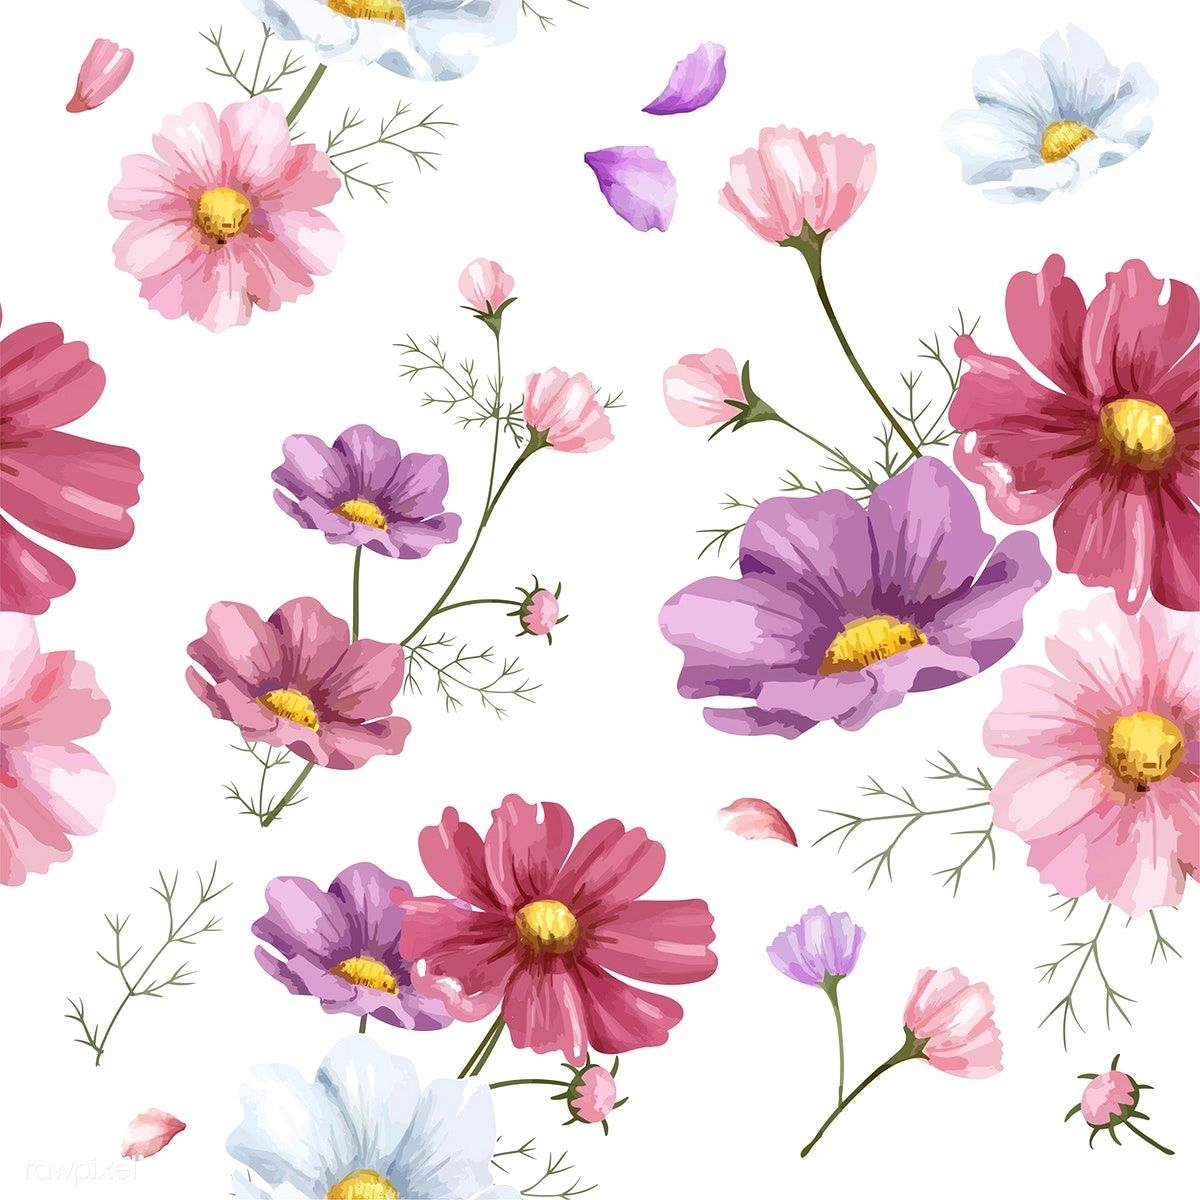 Download Premium Vector Of Hand Drawn Cosmos Flower Pattern 421496 How To Draw Hands Flower Illustration Watercolor Flowers